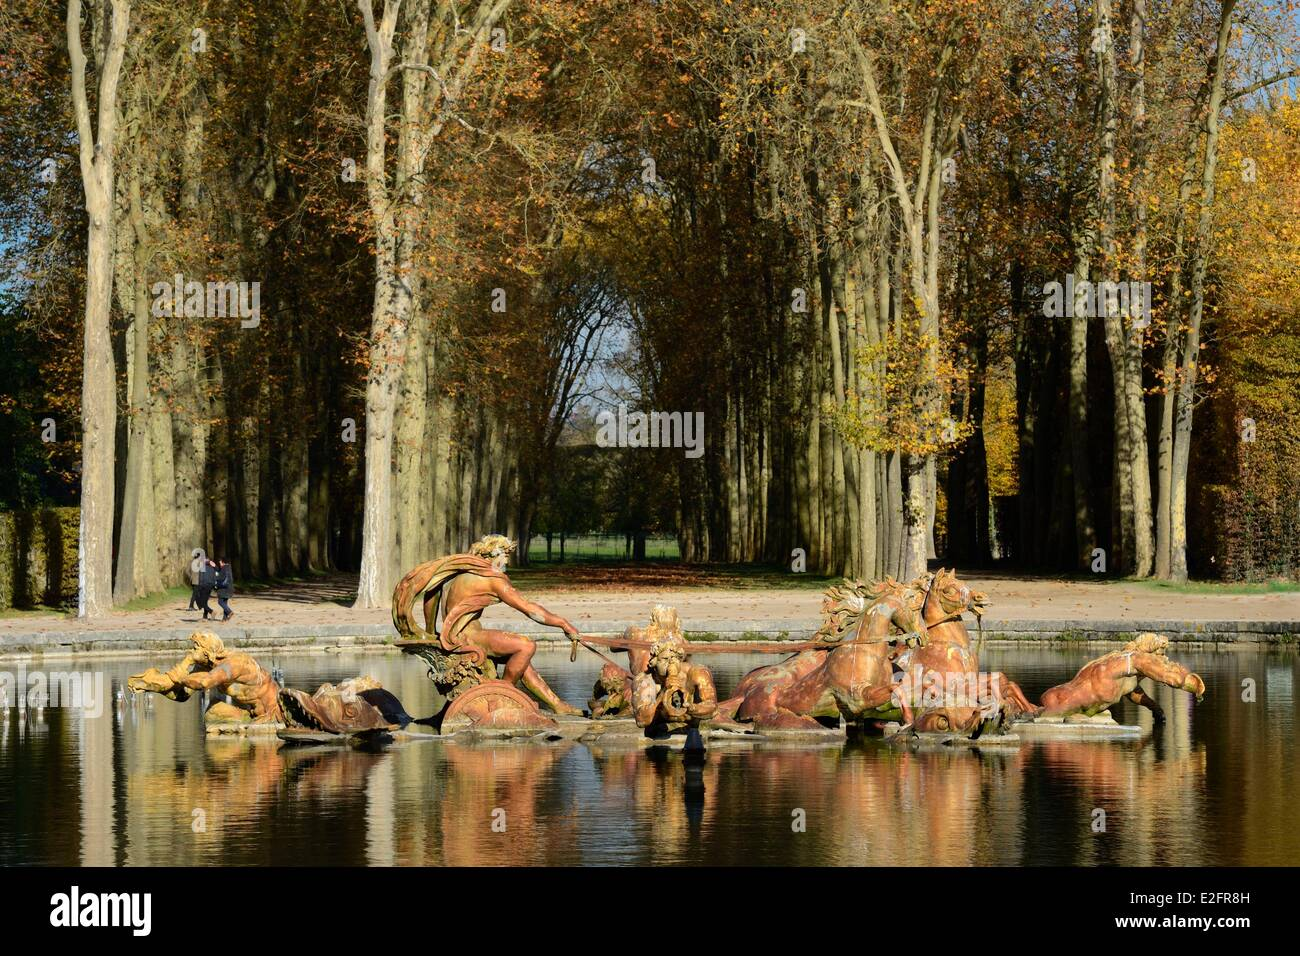 France Yvelines park of the Chateau de Versailles listed as World Heritage by UNESCO Apollo basin - Stock Image